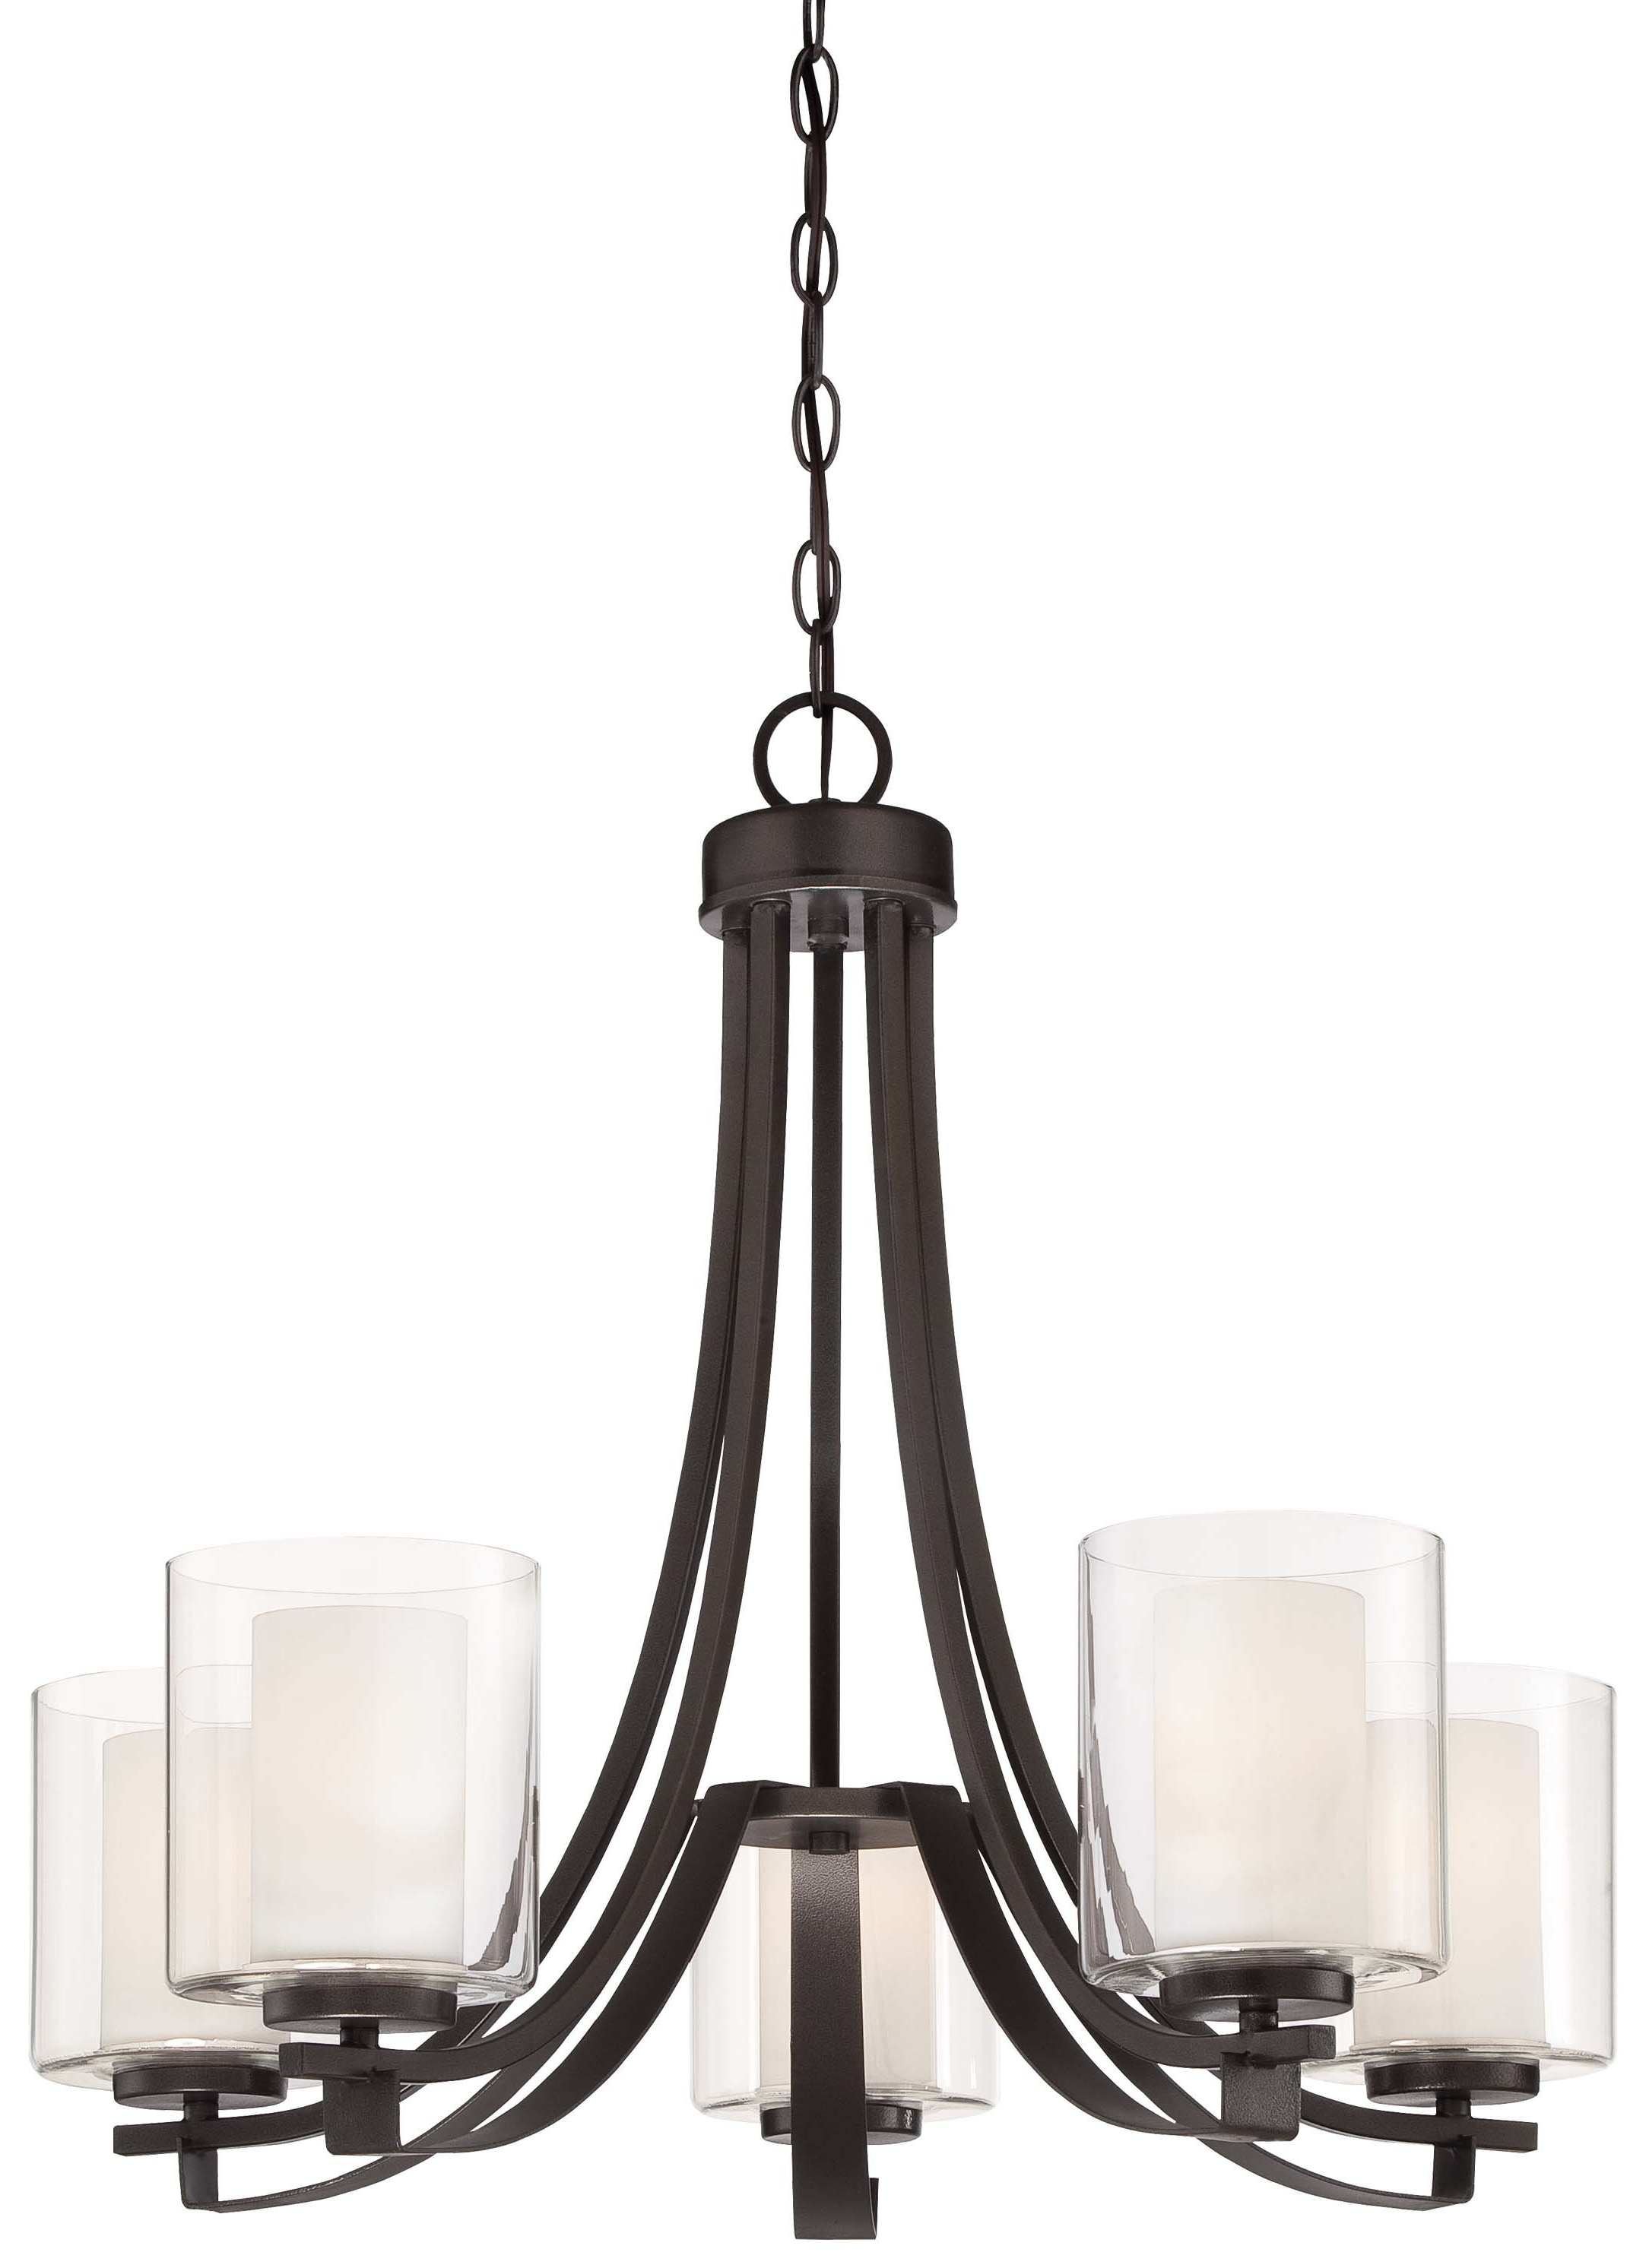 Ebern Designs Demby 5 Light Shaded Chandelier Inside Fashionable Hayden 5 Light Shaded Chandeliers (View 4 of 20)